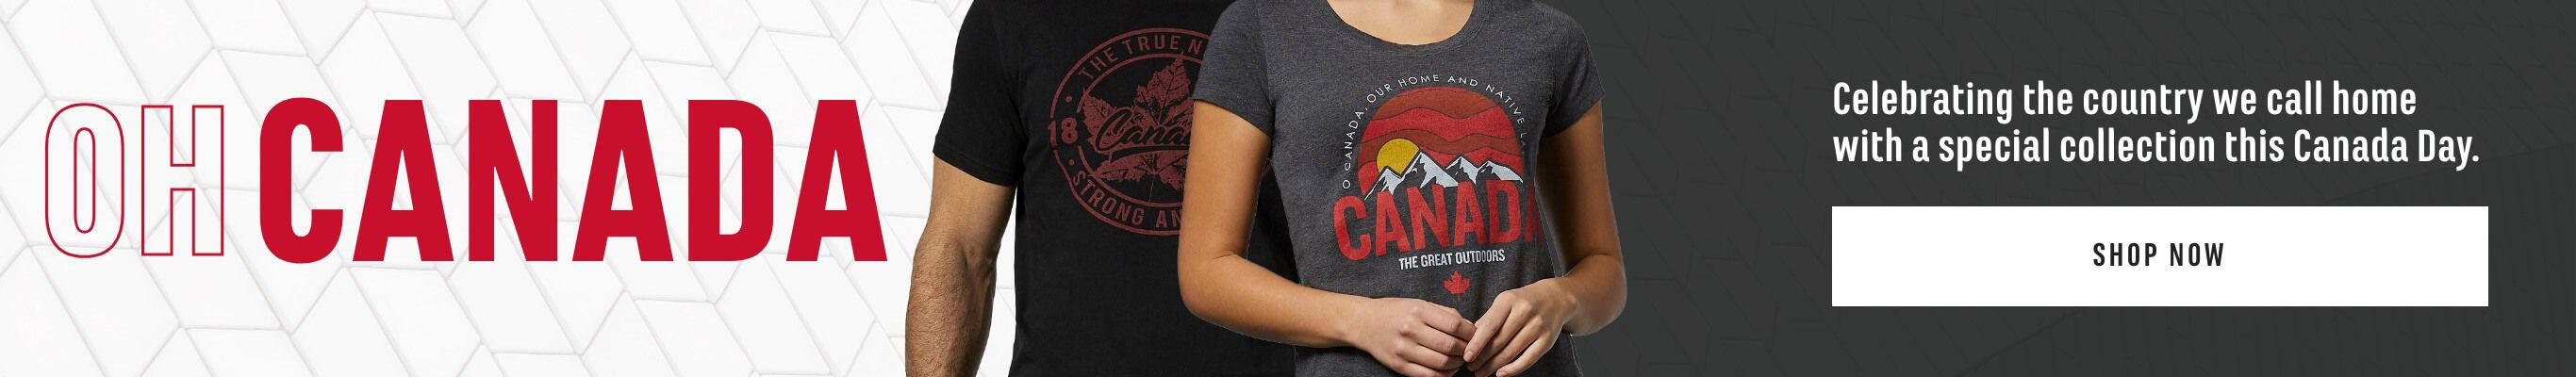 OH Canada! Celebrating the country we call home with a special collection this Canada Day. Shop Now